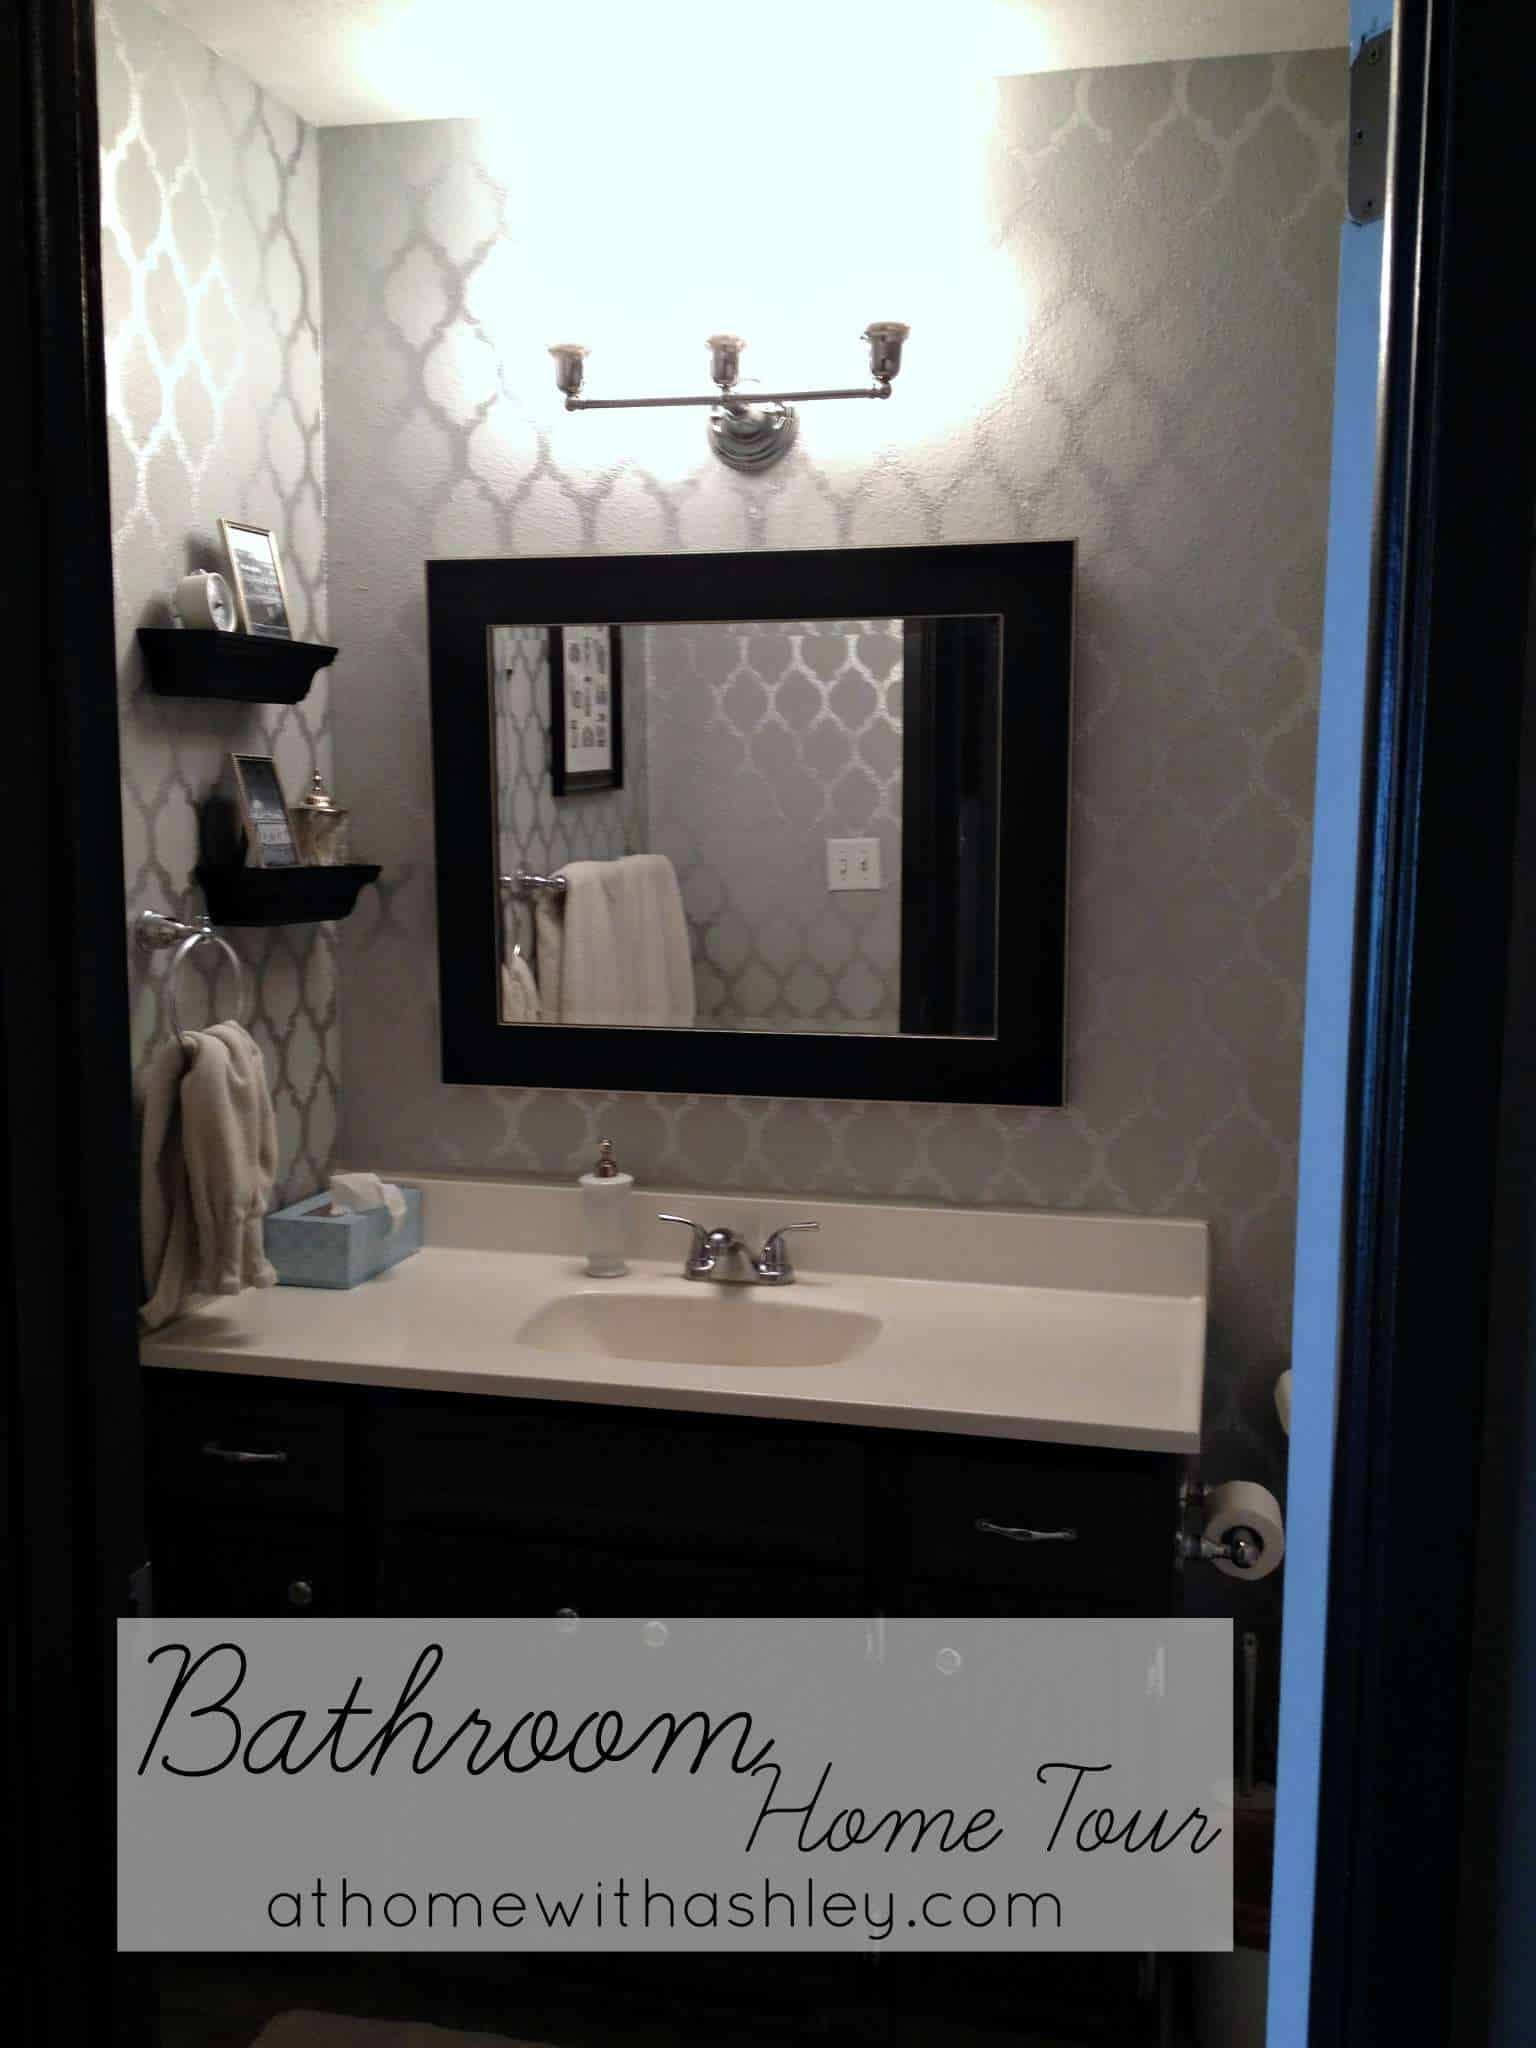 Bathroom Home Tour